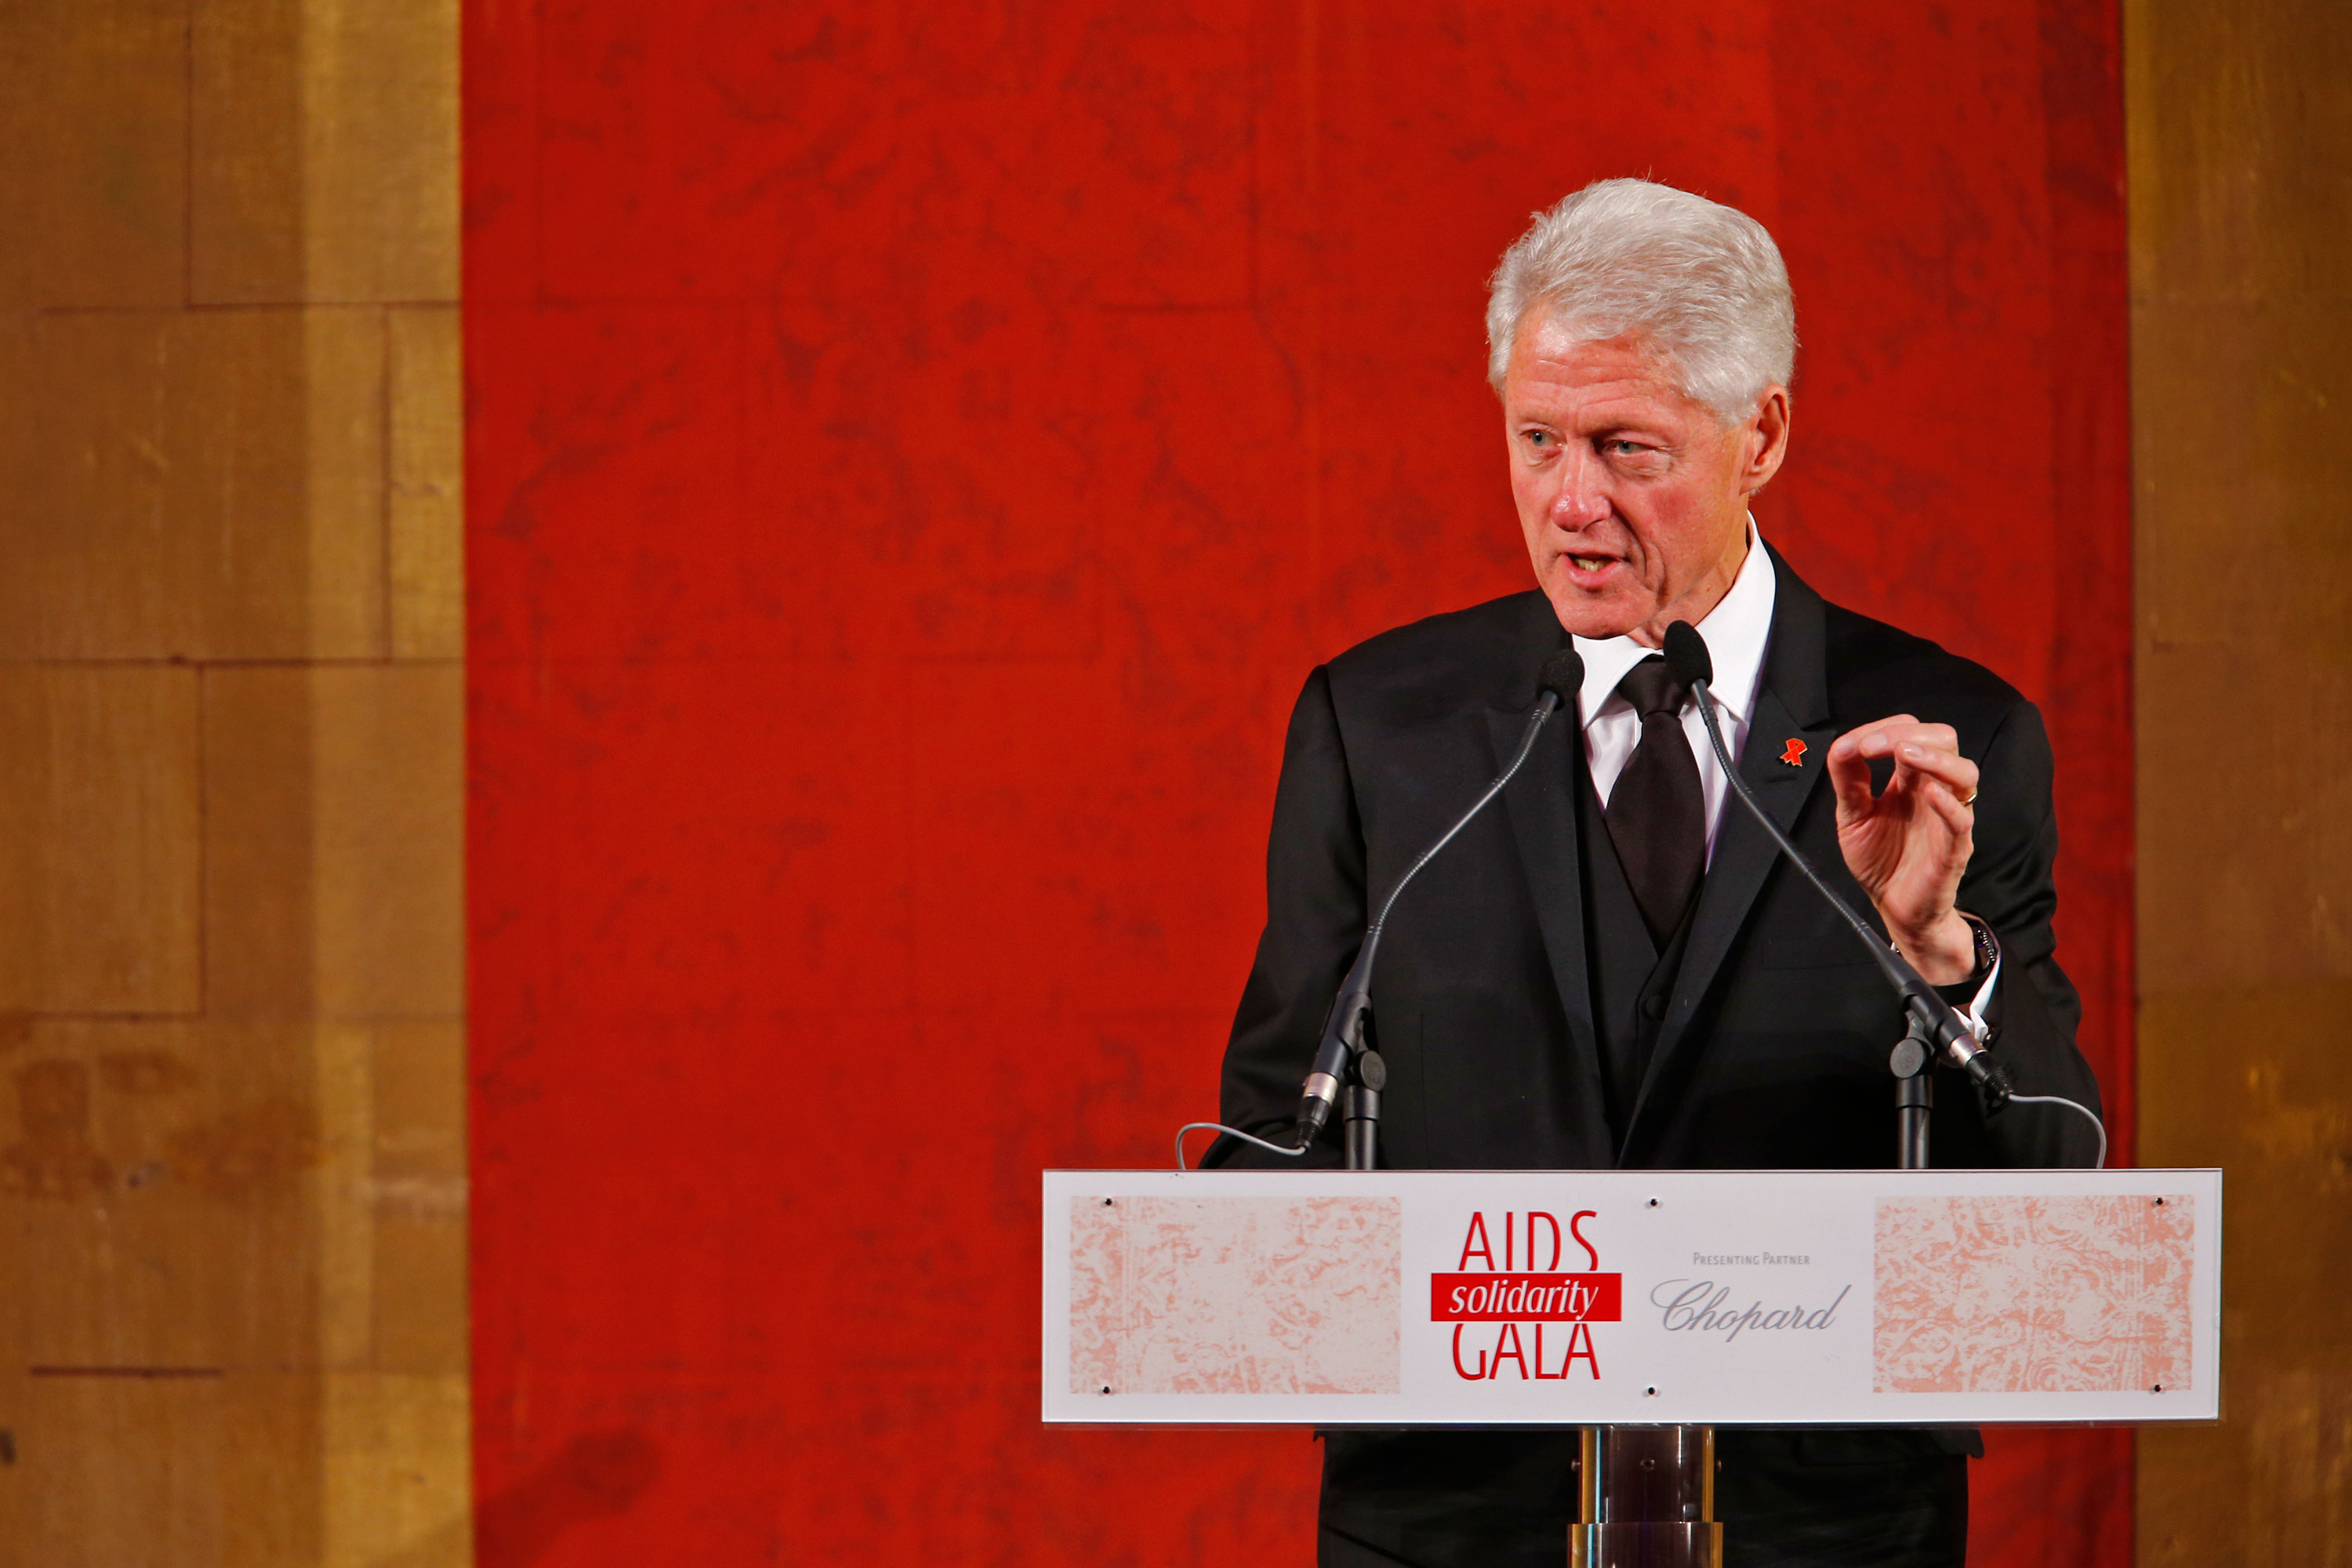 Bill Clinton speaks at the AIDS Solidarity Gala at Vienna's Hofburg Palace on May 16, 2015. (Photo by Getty Images)